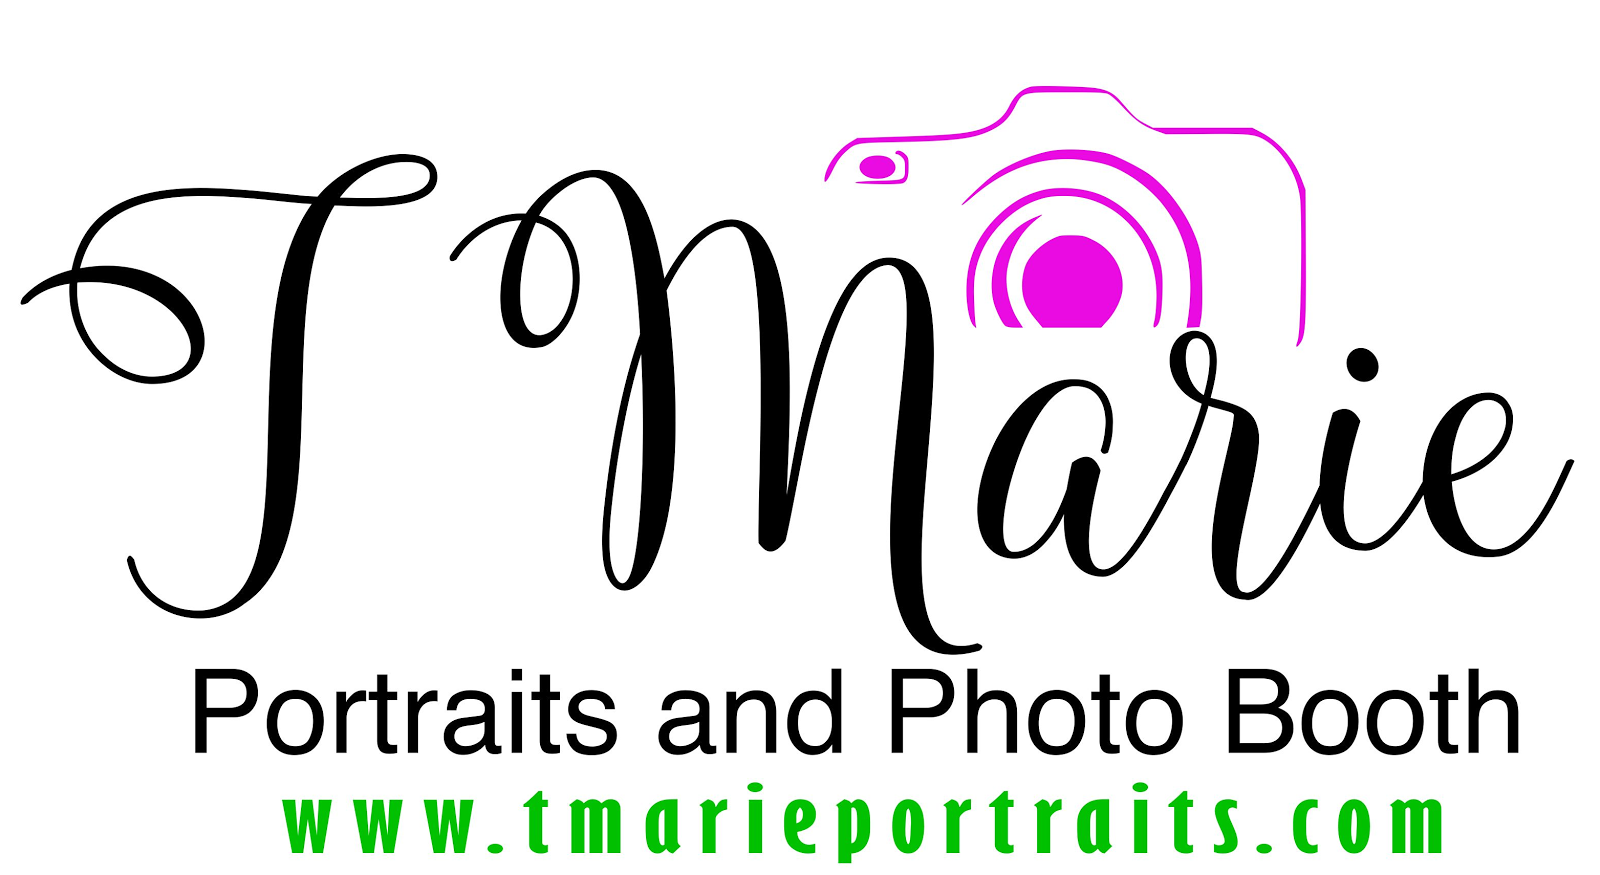 T Marie Portraits and Photo Booth